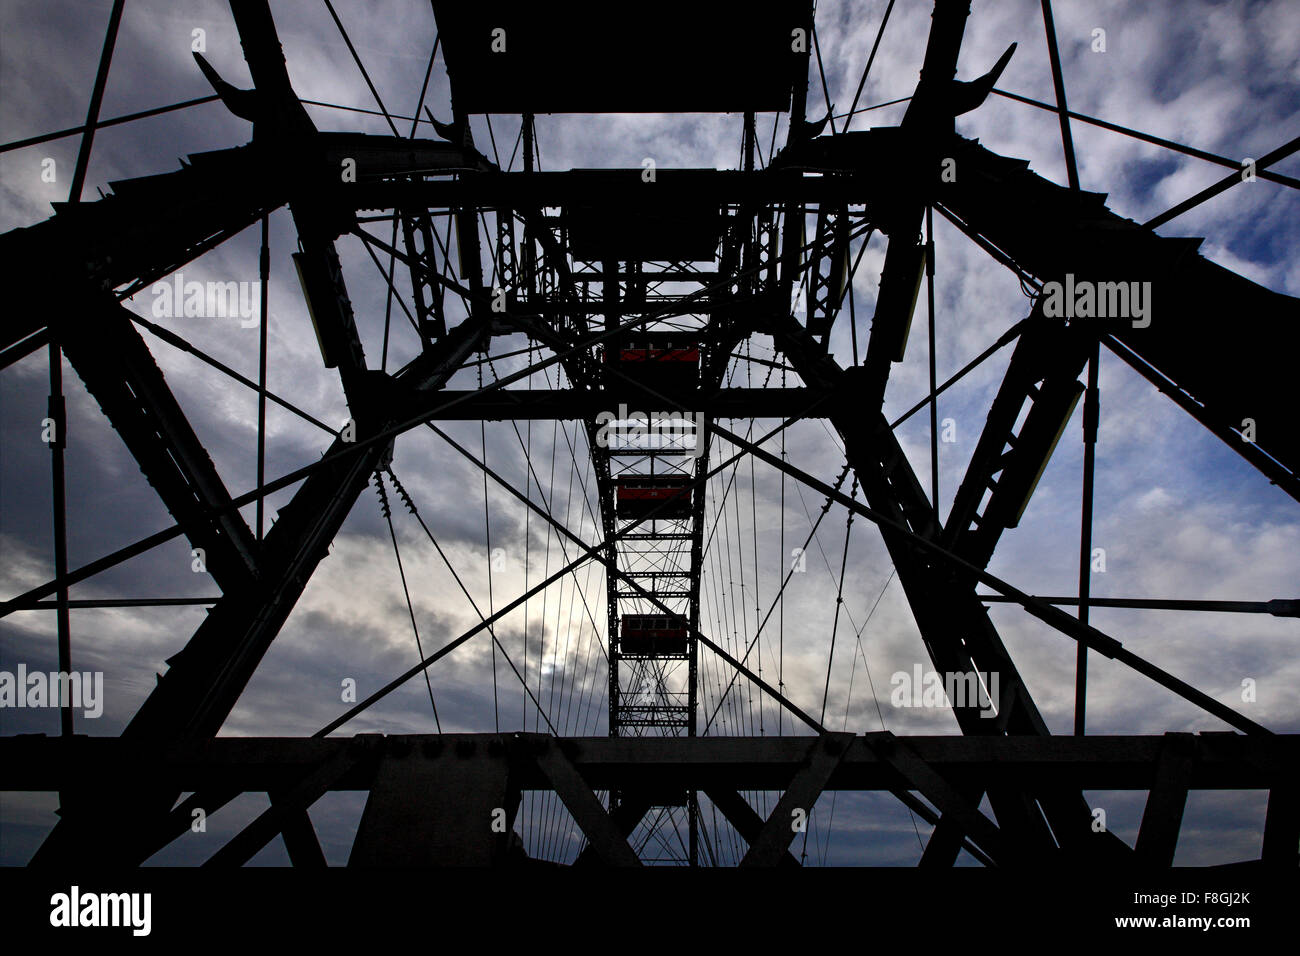 The famous 'Riesenrad' (remember 'The Third Man'?), the giant Ferris wheel at Prater park, Vienna, - Stock Image